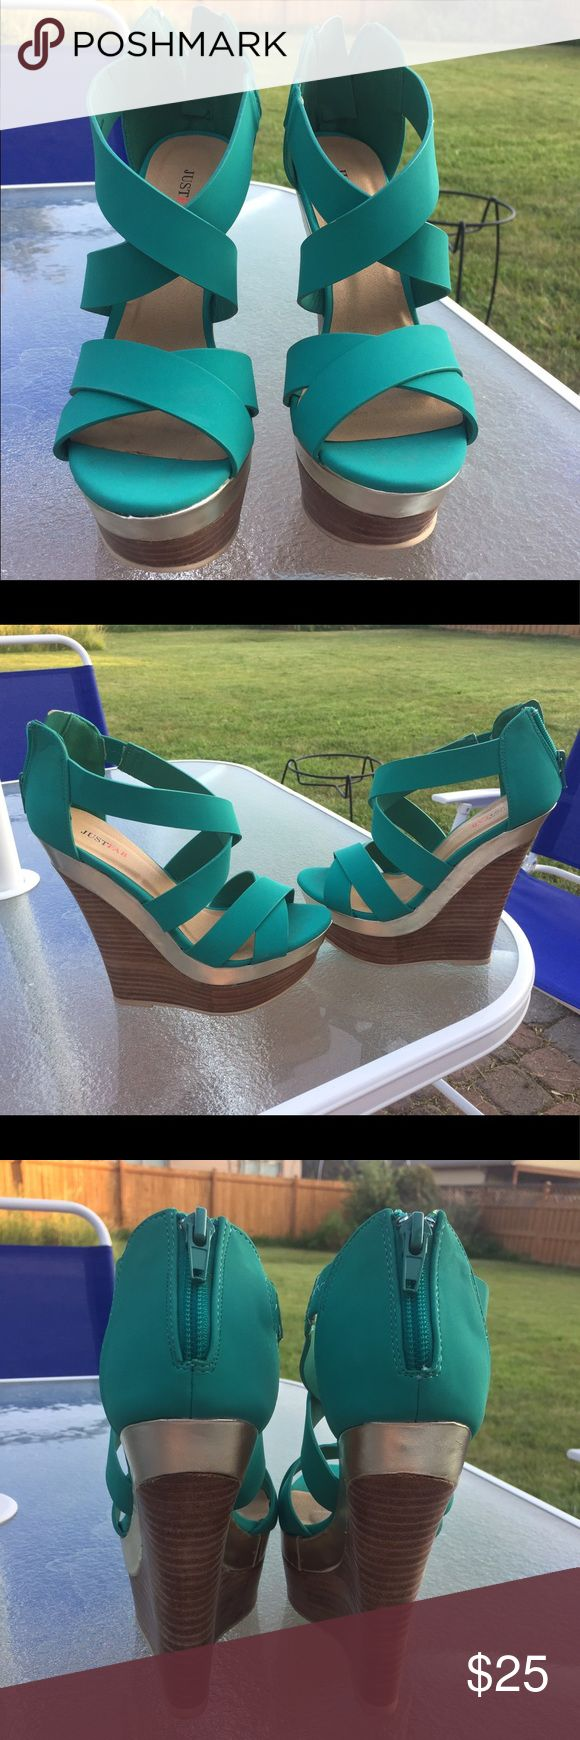 Teal wedges, size 6.5 JustFab teal wedges with gold detail and zipper in the back. Worn once JustFab Shoes Wedges